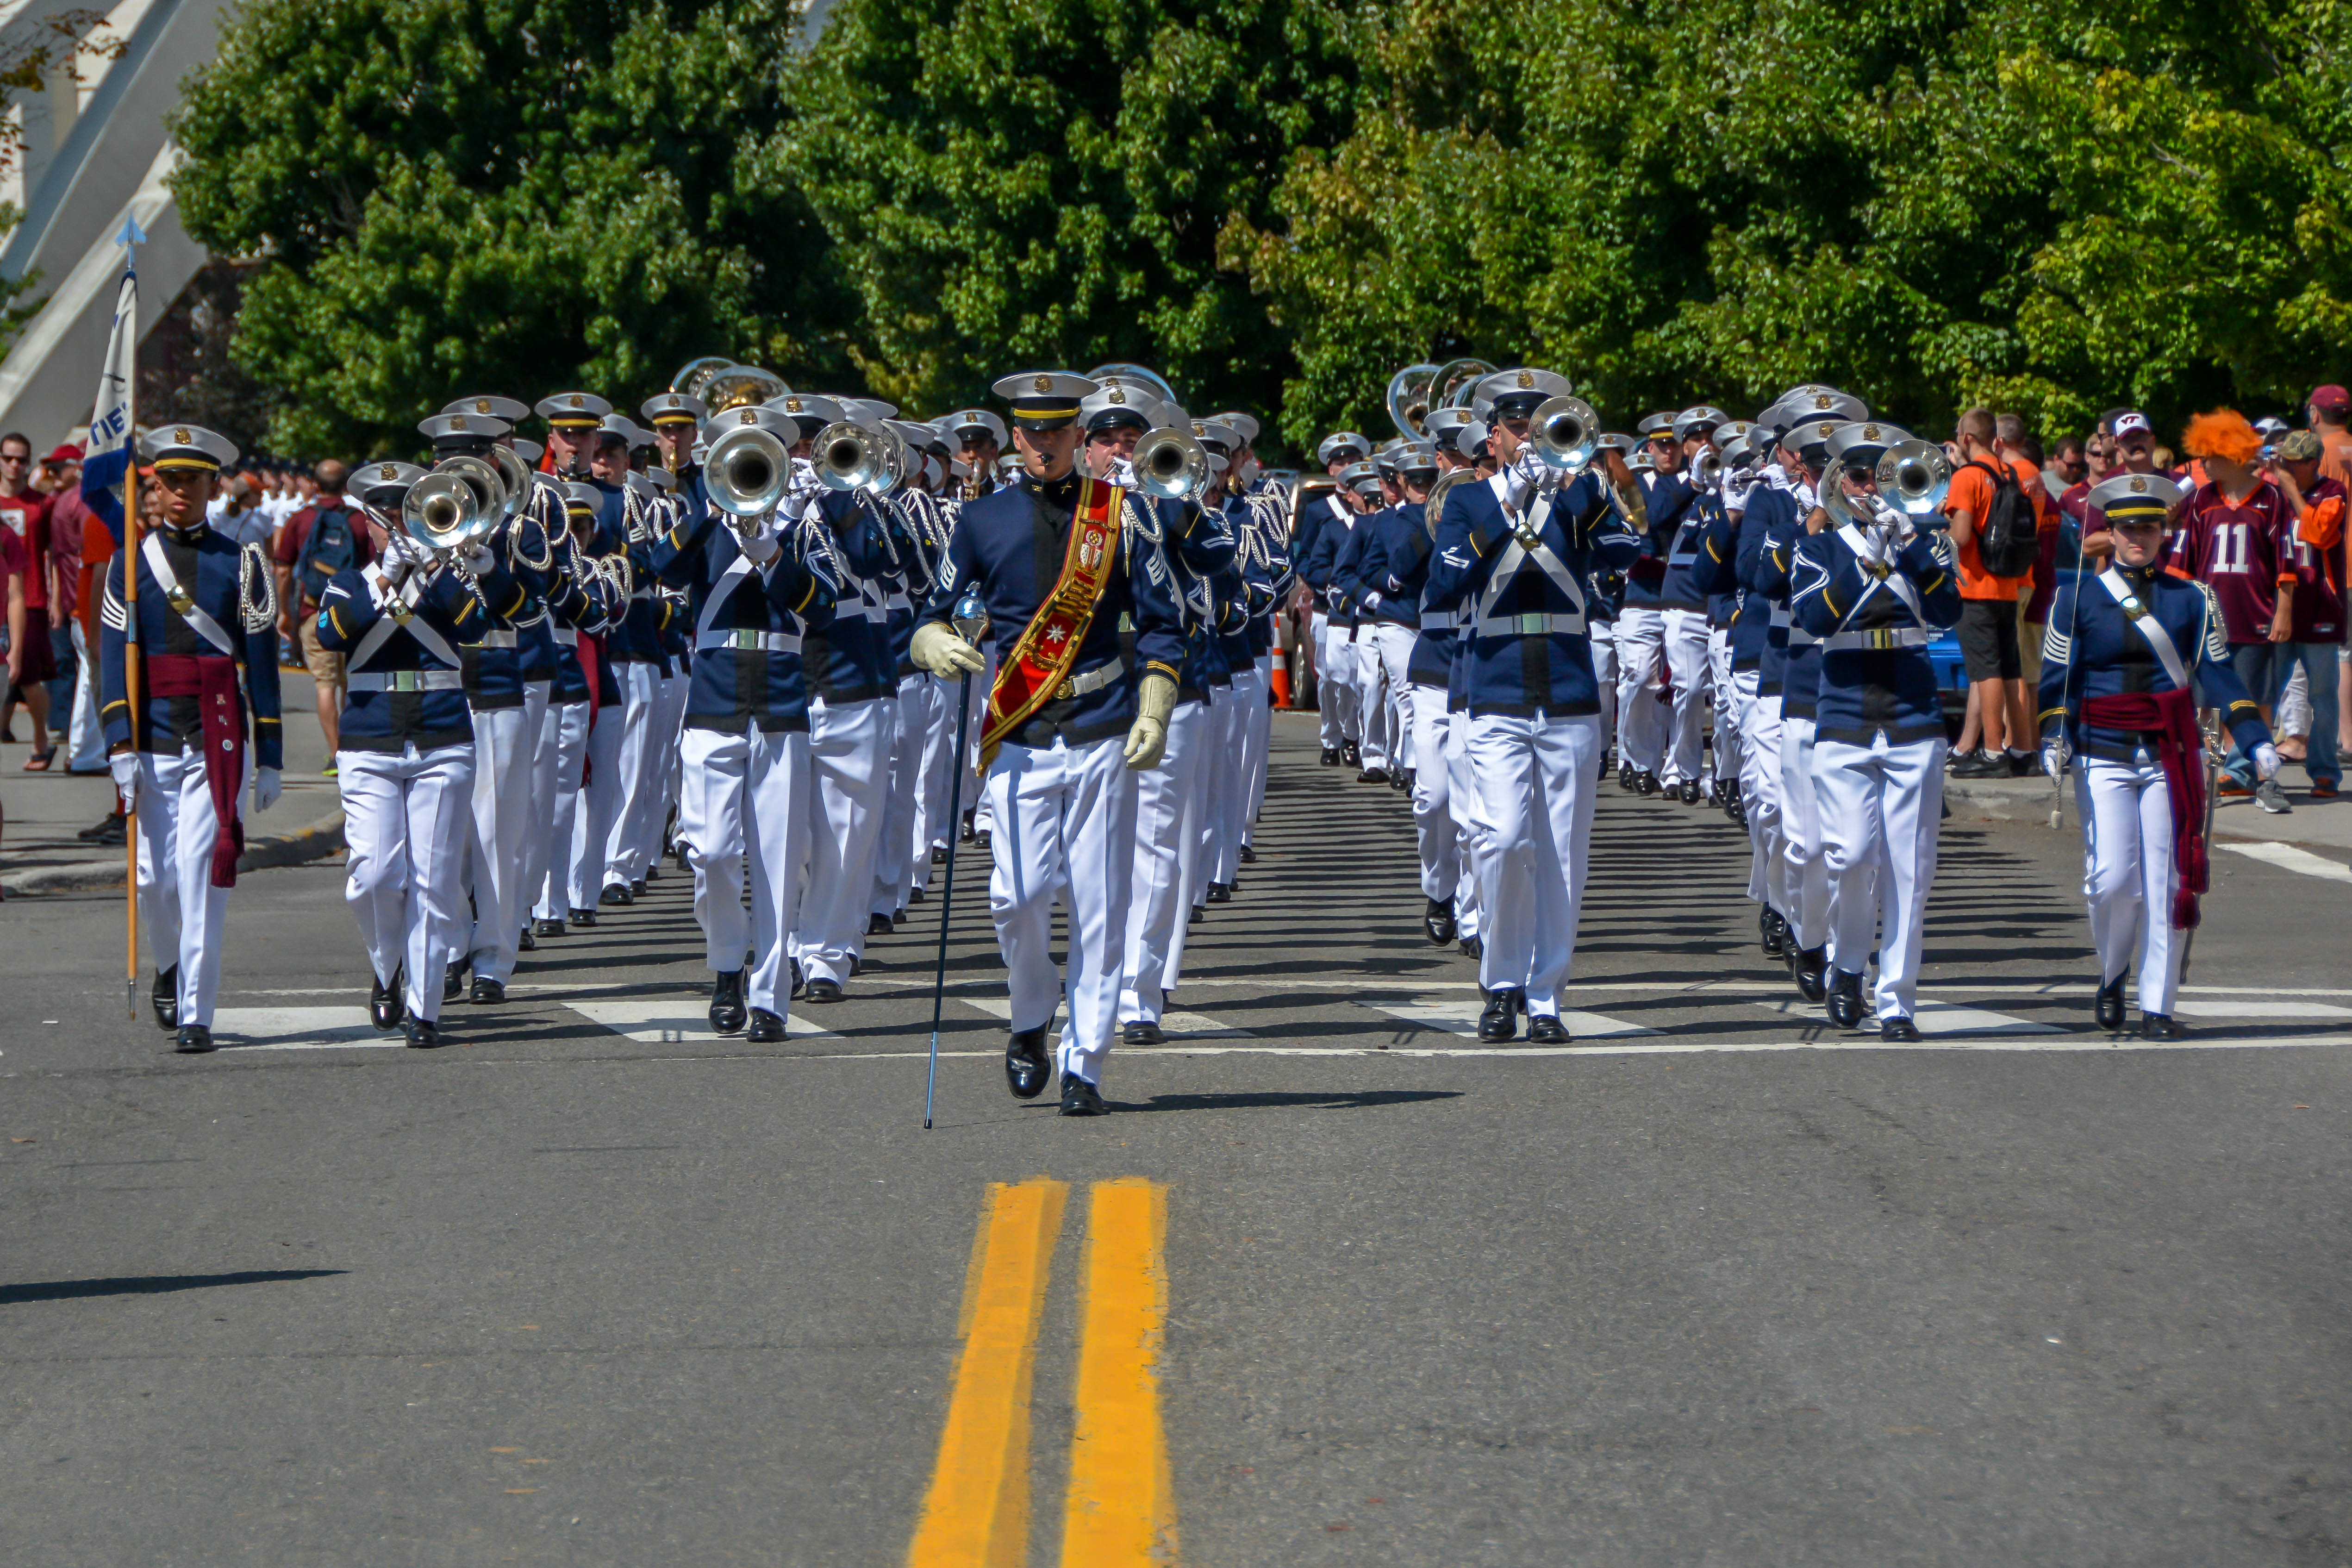 The Highty-Tighties march to Lane Stadium